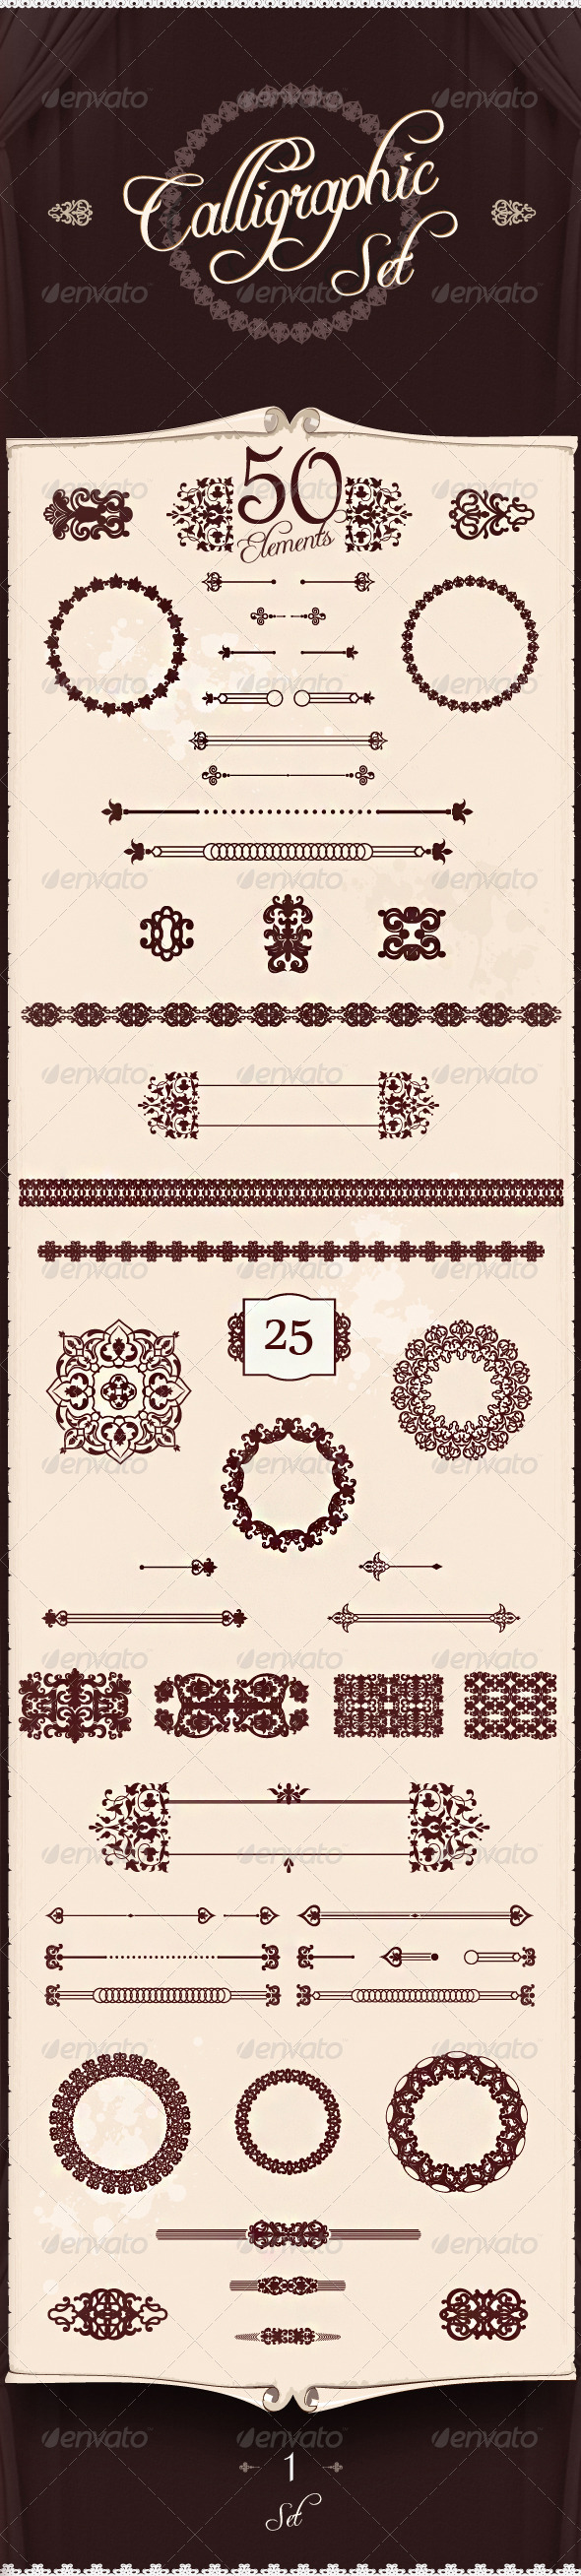 GraphicRiver Premium Calligraphic Design Set 3876456